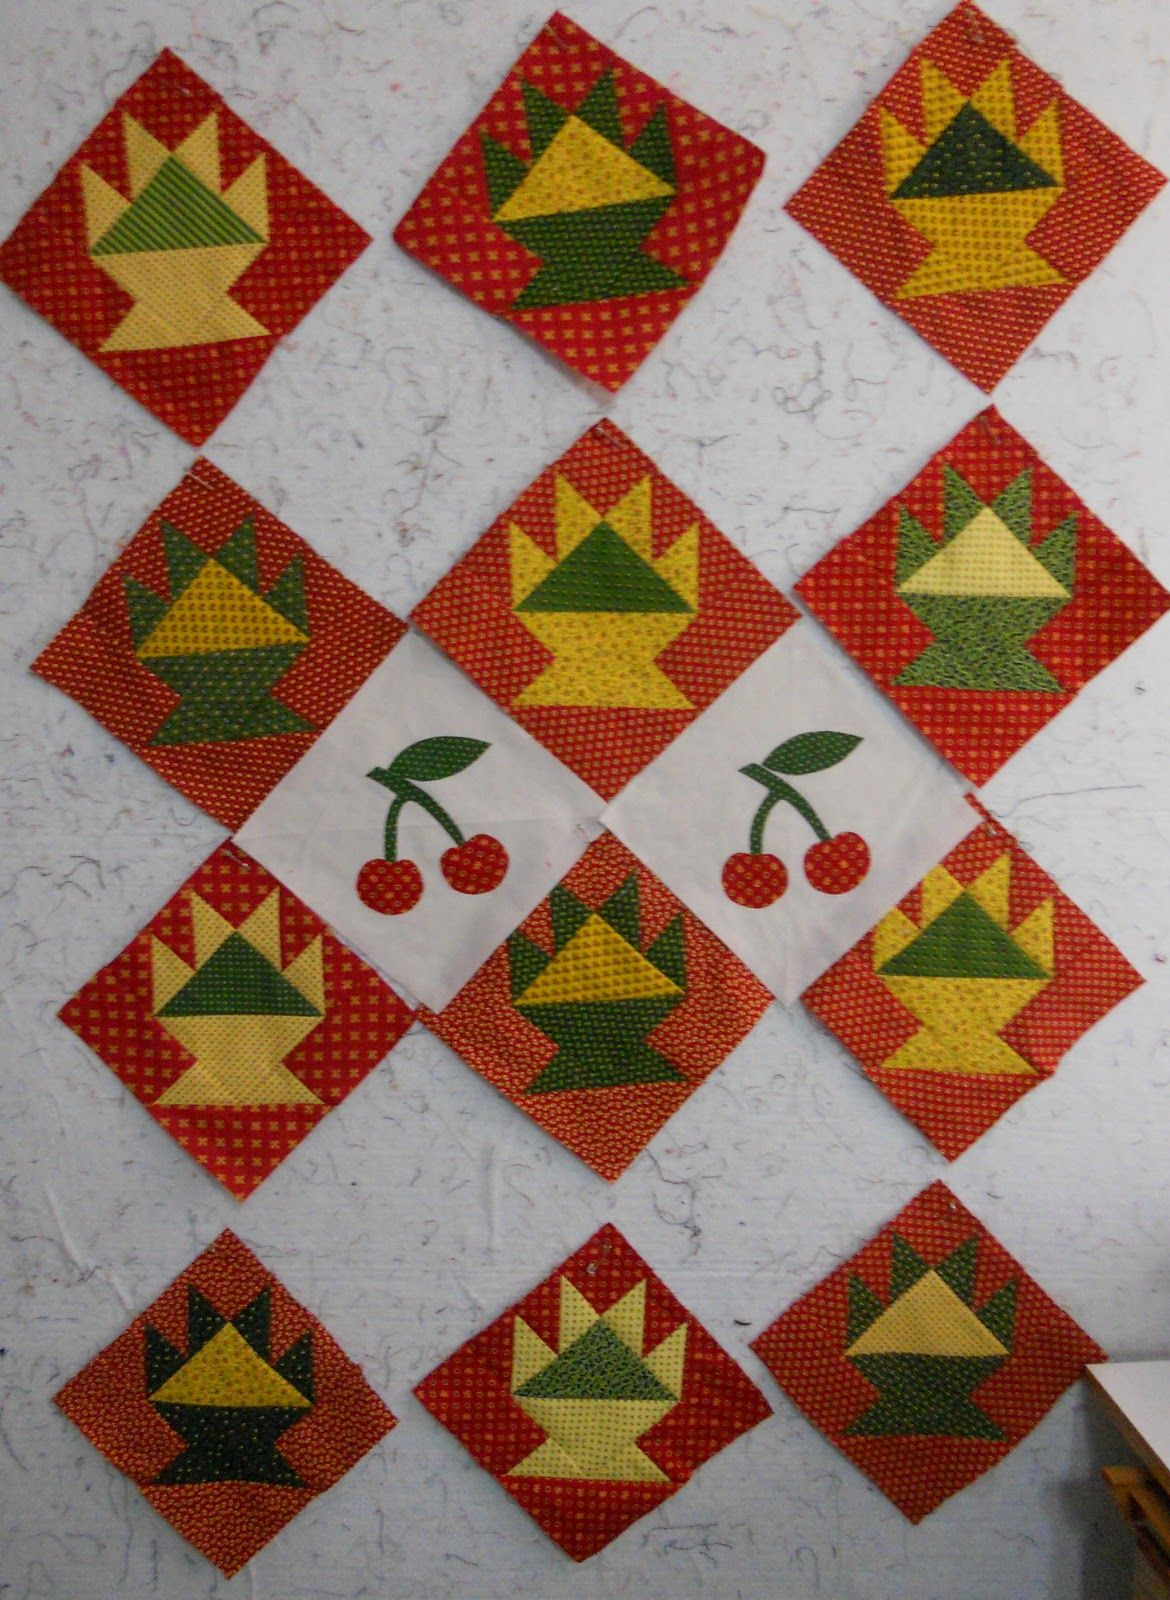 cherry basket quilt blocks (With images) Small quilts